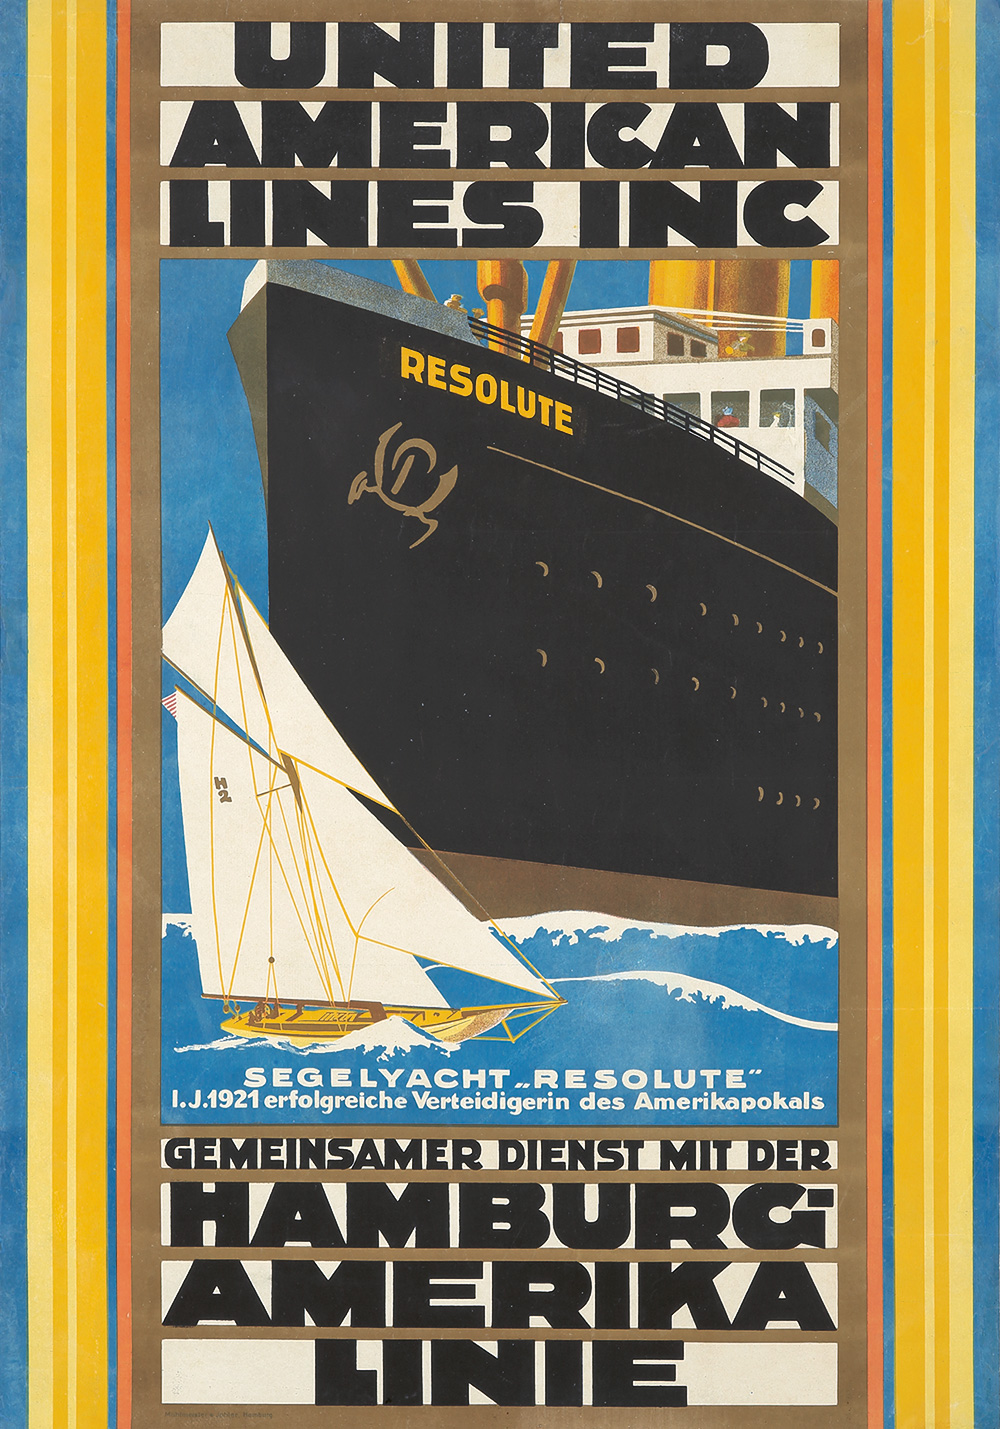 108. United American Lines. ca. 1922.